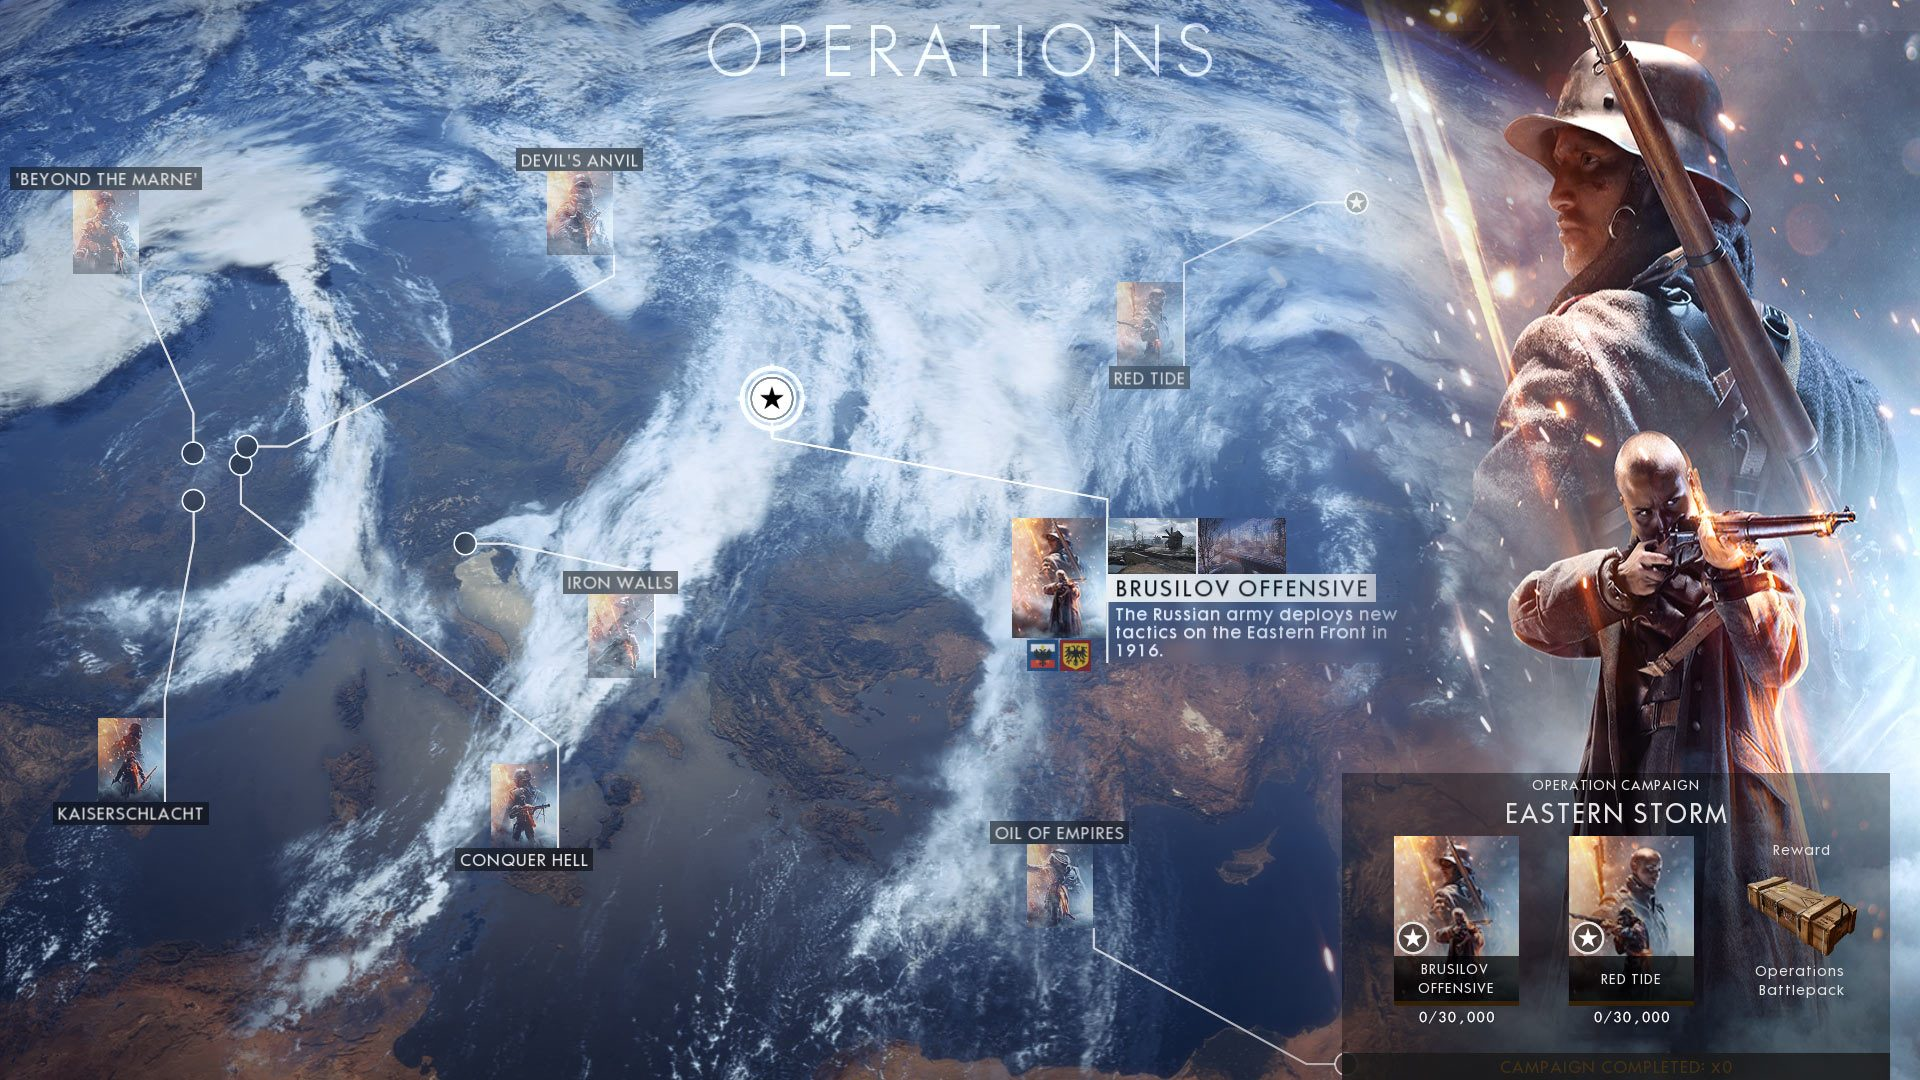 battlefield 1 operation campaigns update